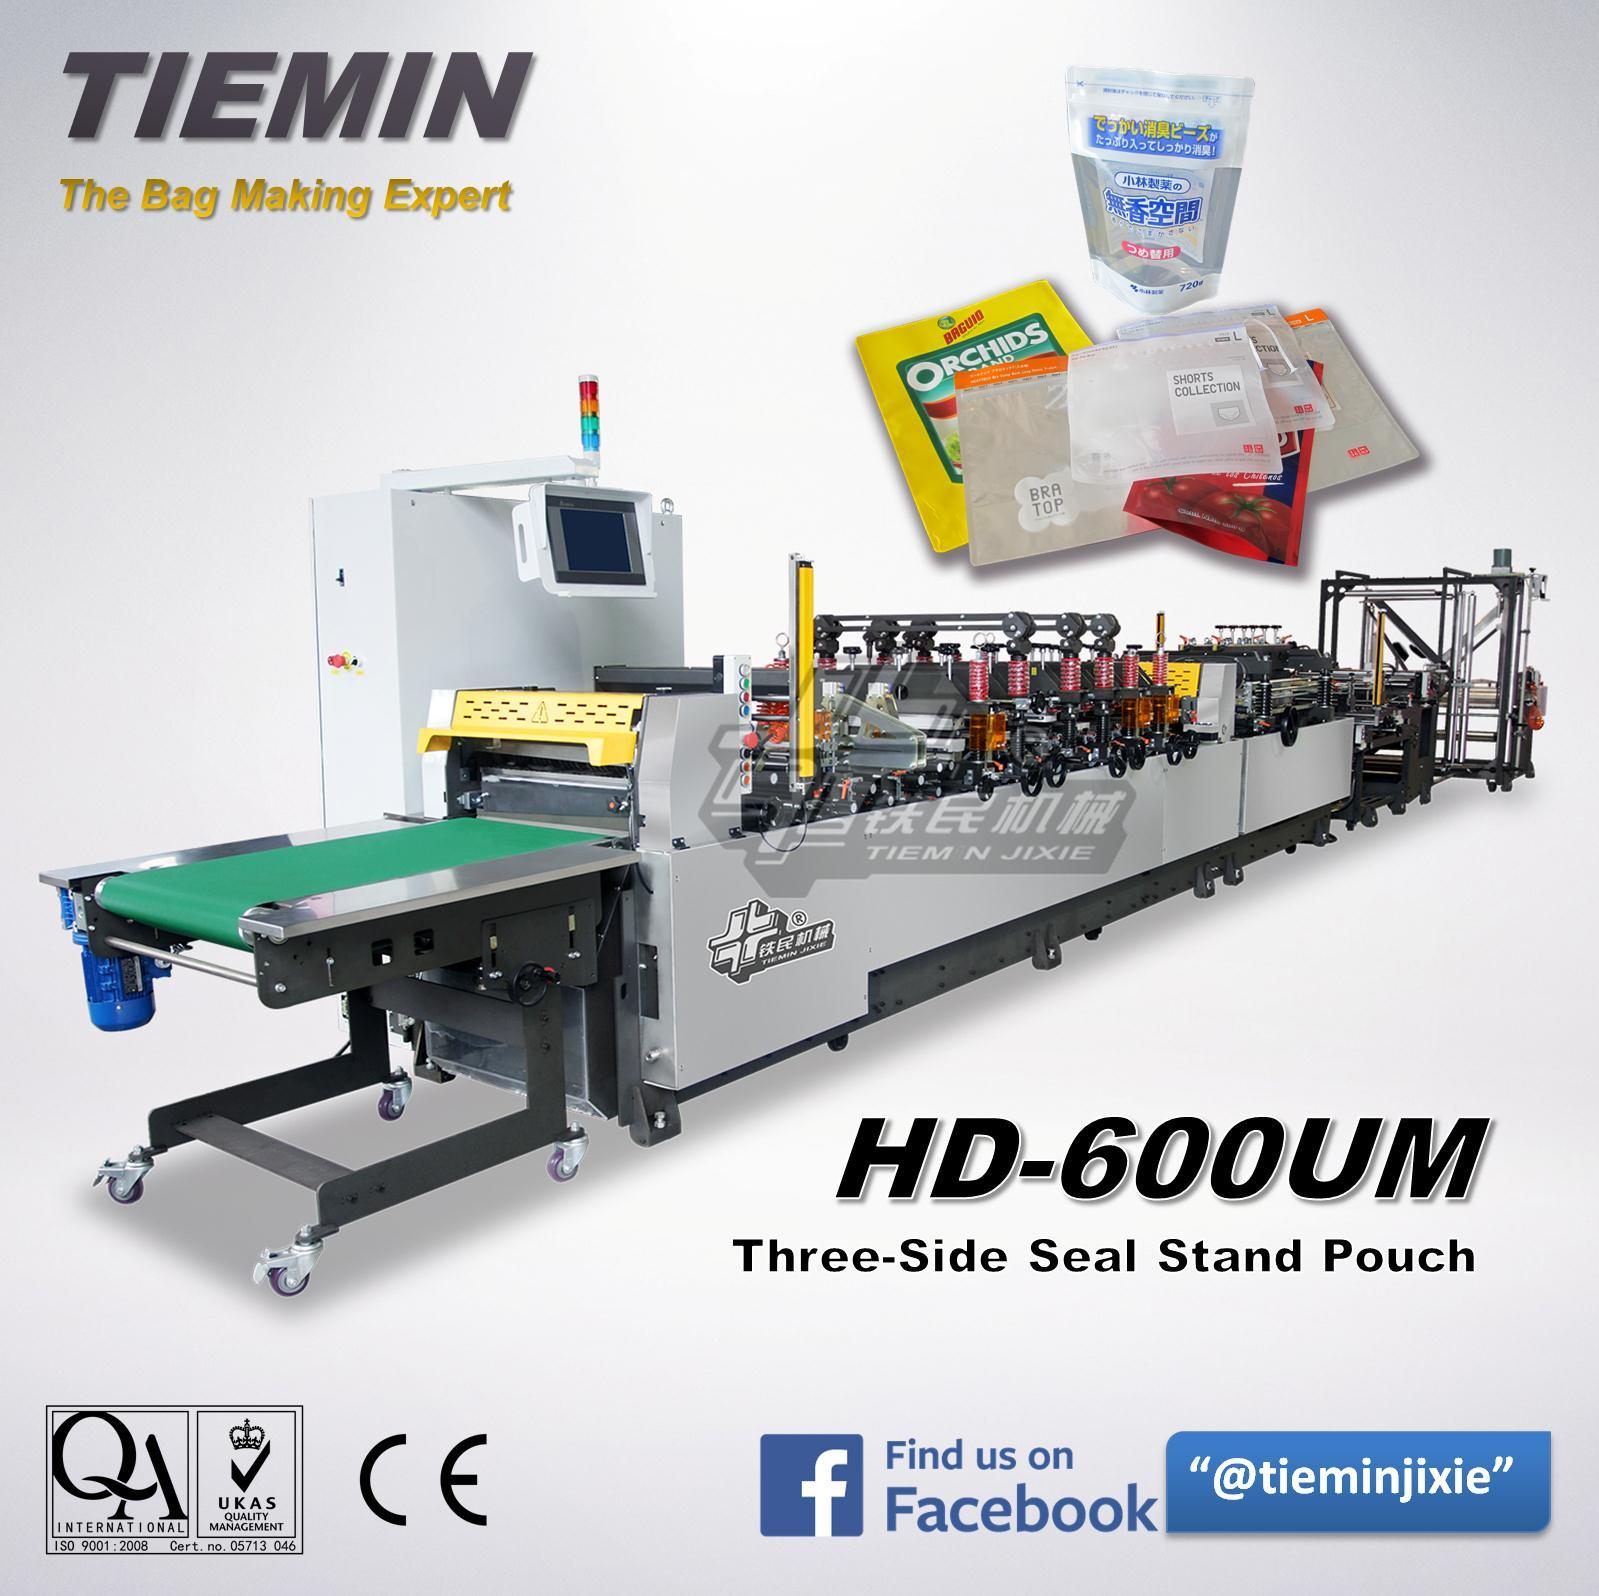 Tiemin High Quality High Speed Automatic Bag Pouch Making Machine Machinery